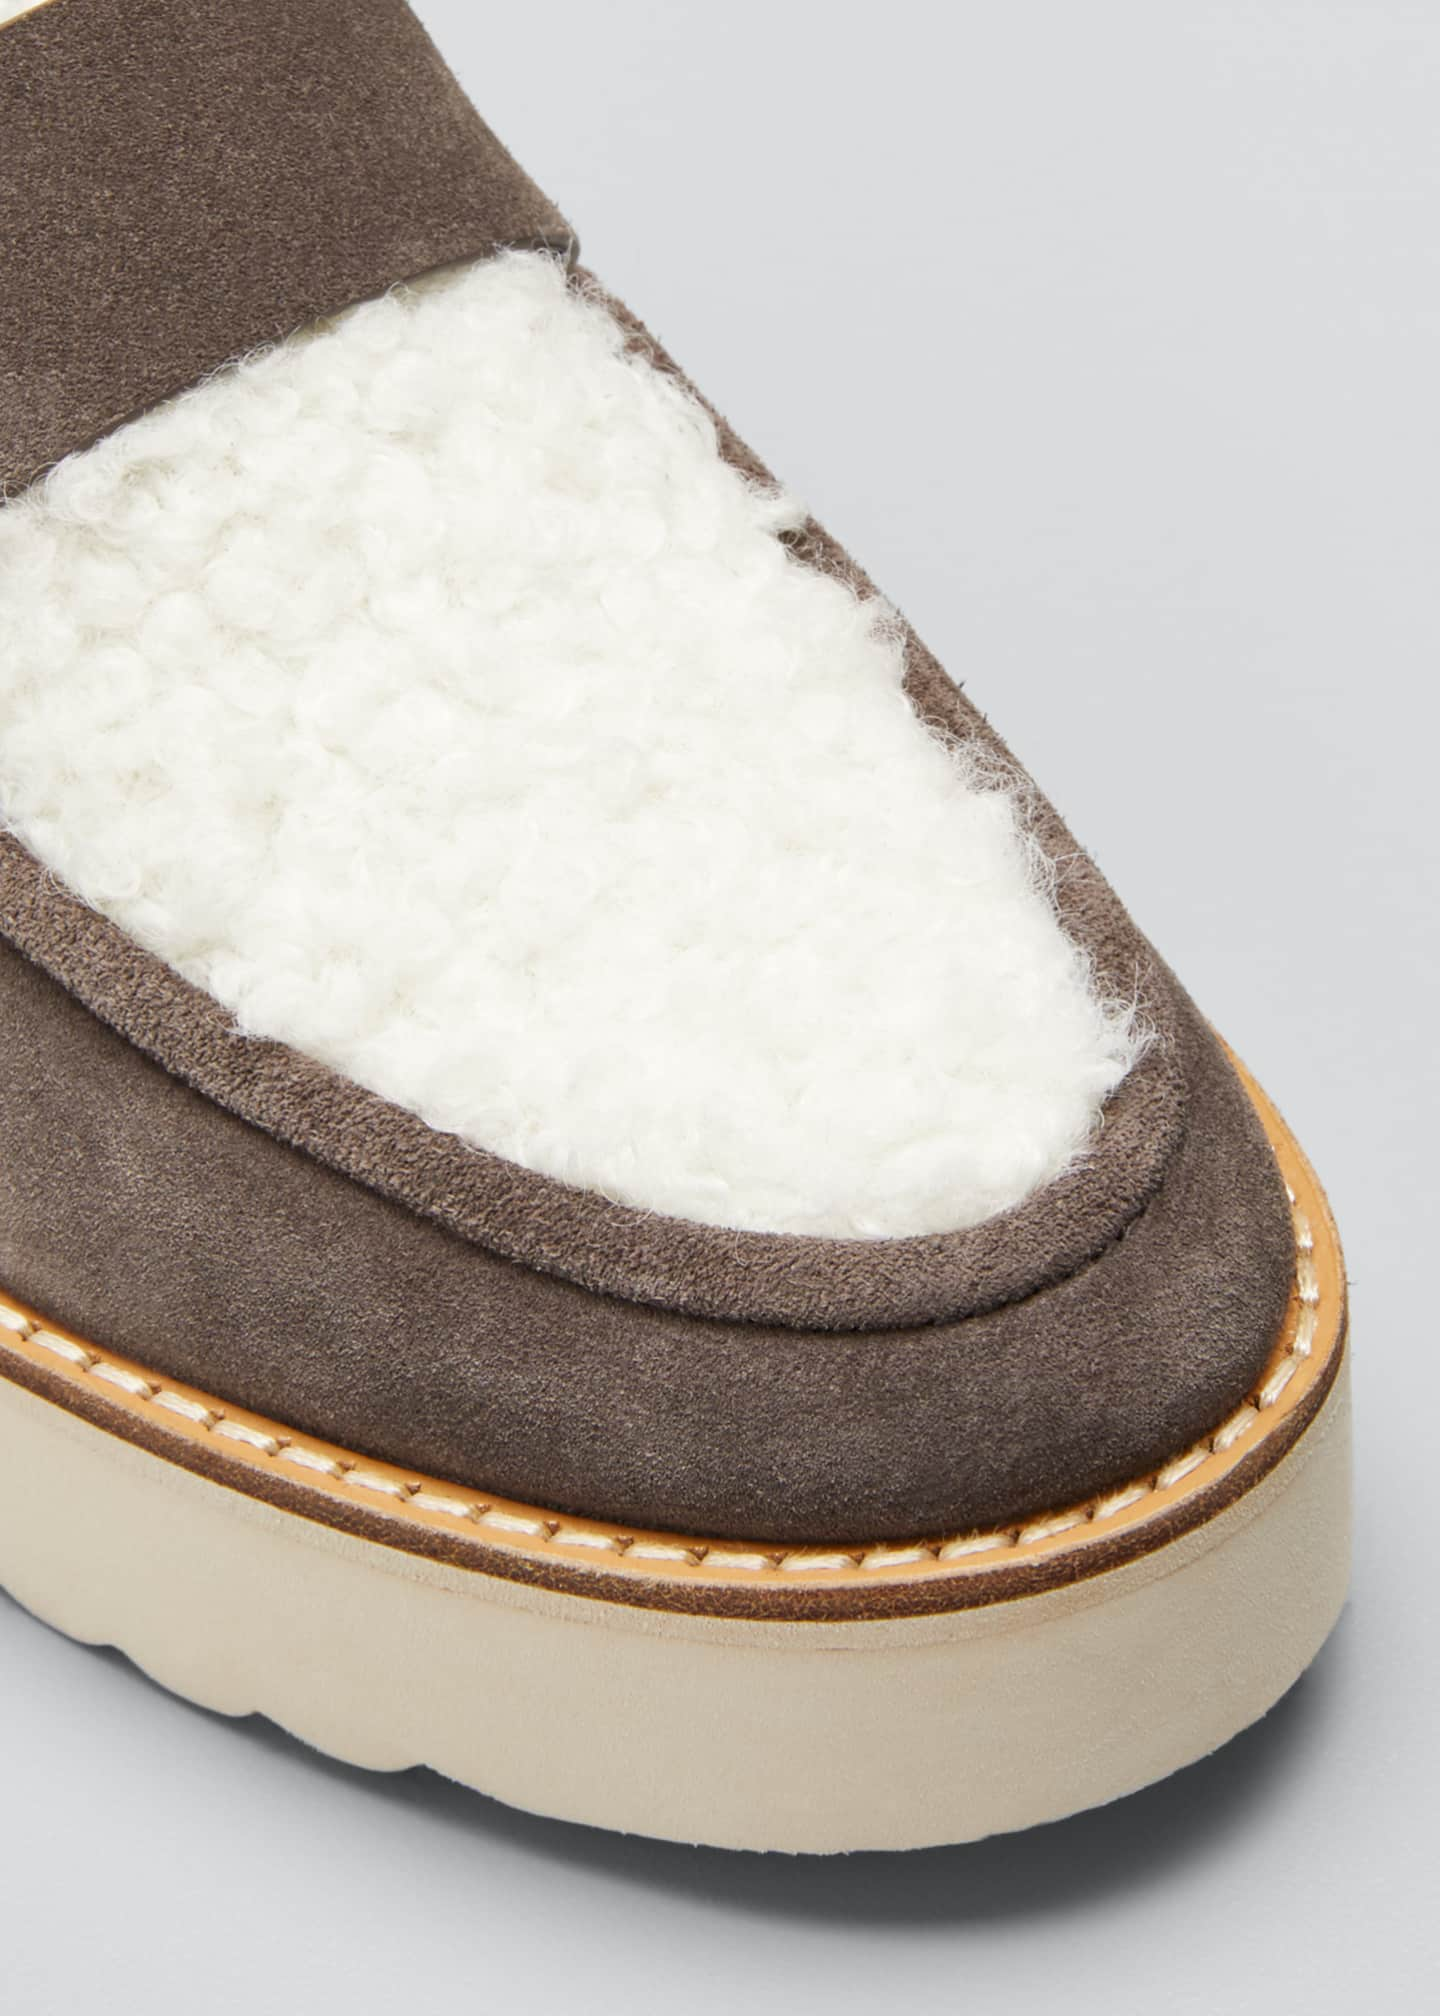 Image 3 of 3: Zola Suede and Shearling Chunky Loafers